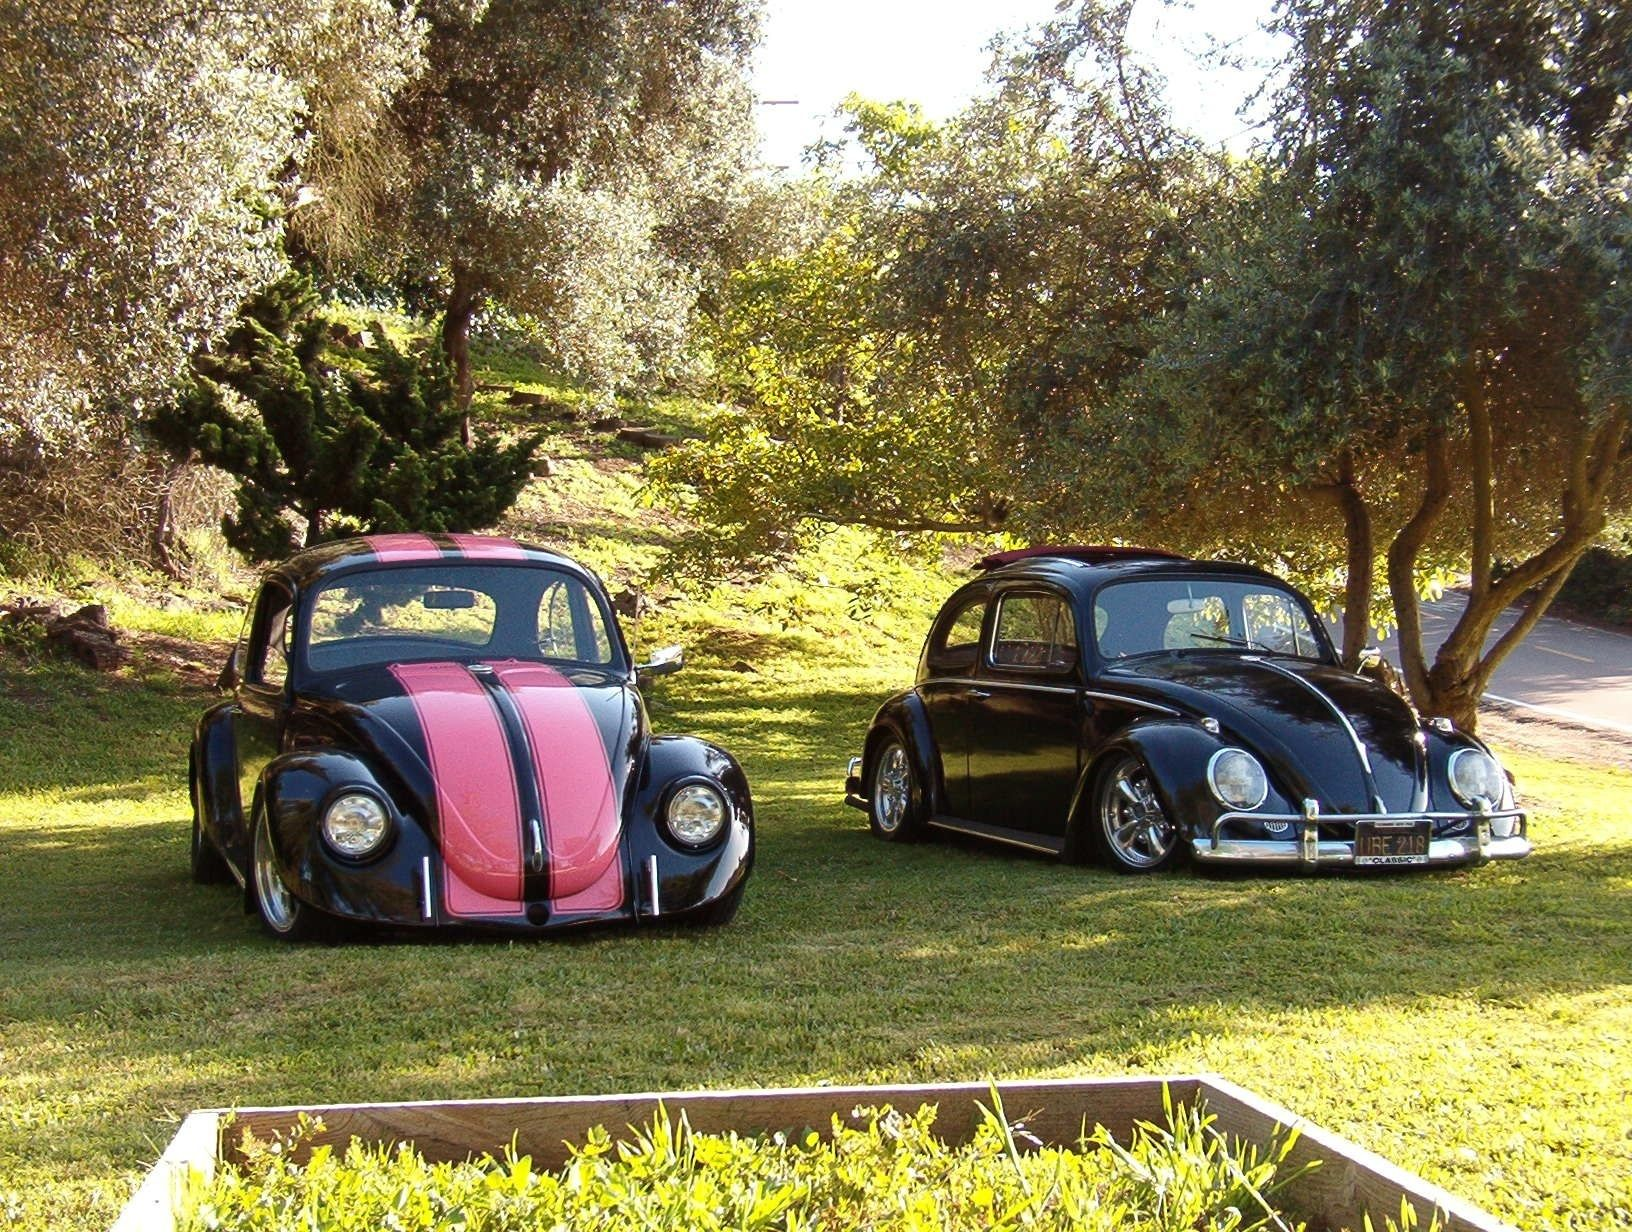 Volkswagen His And Hers Pink Car Sweet Ride Old Bug